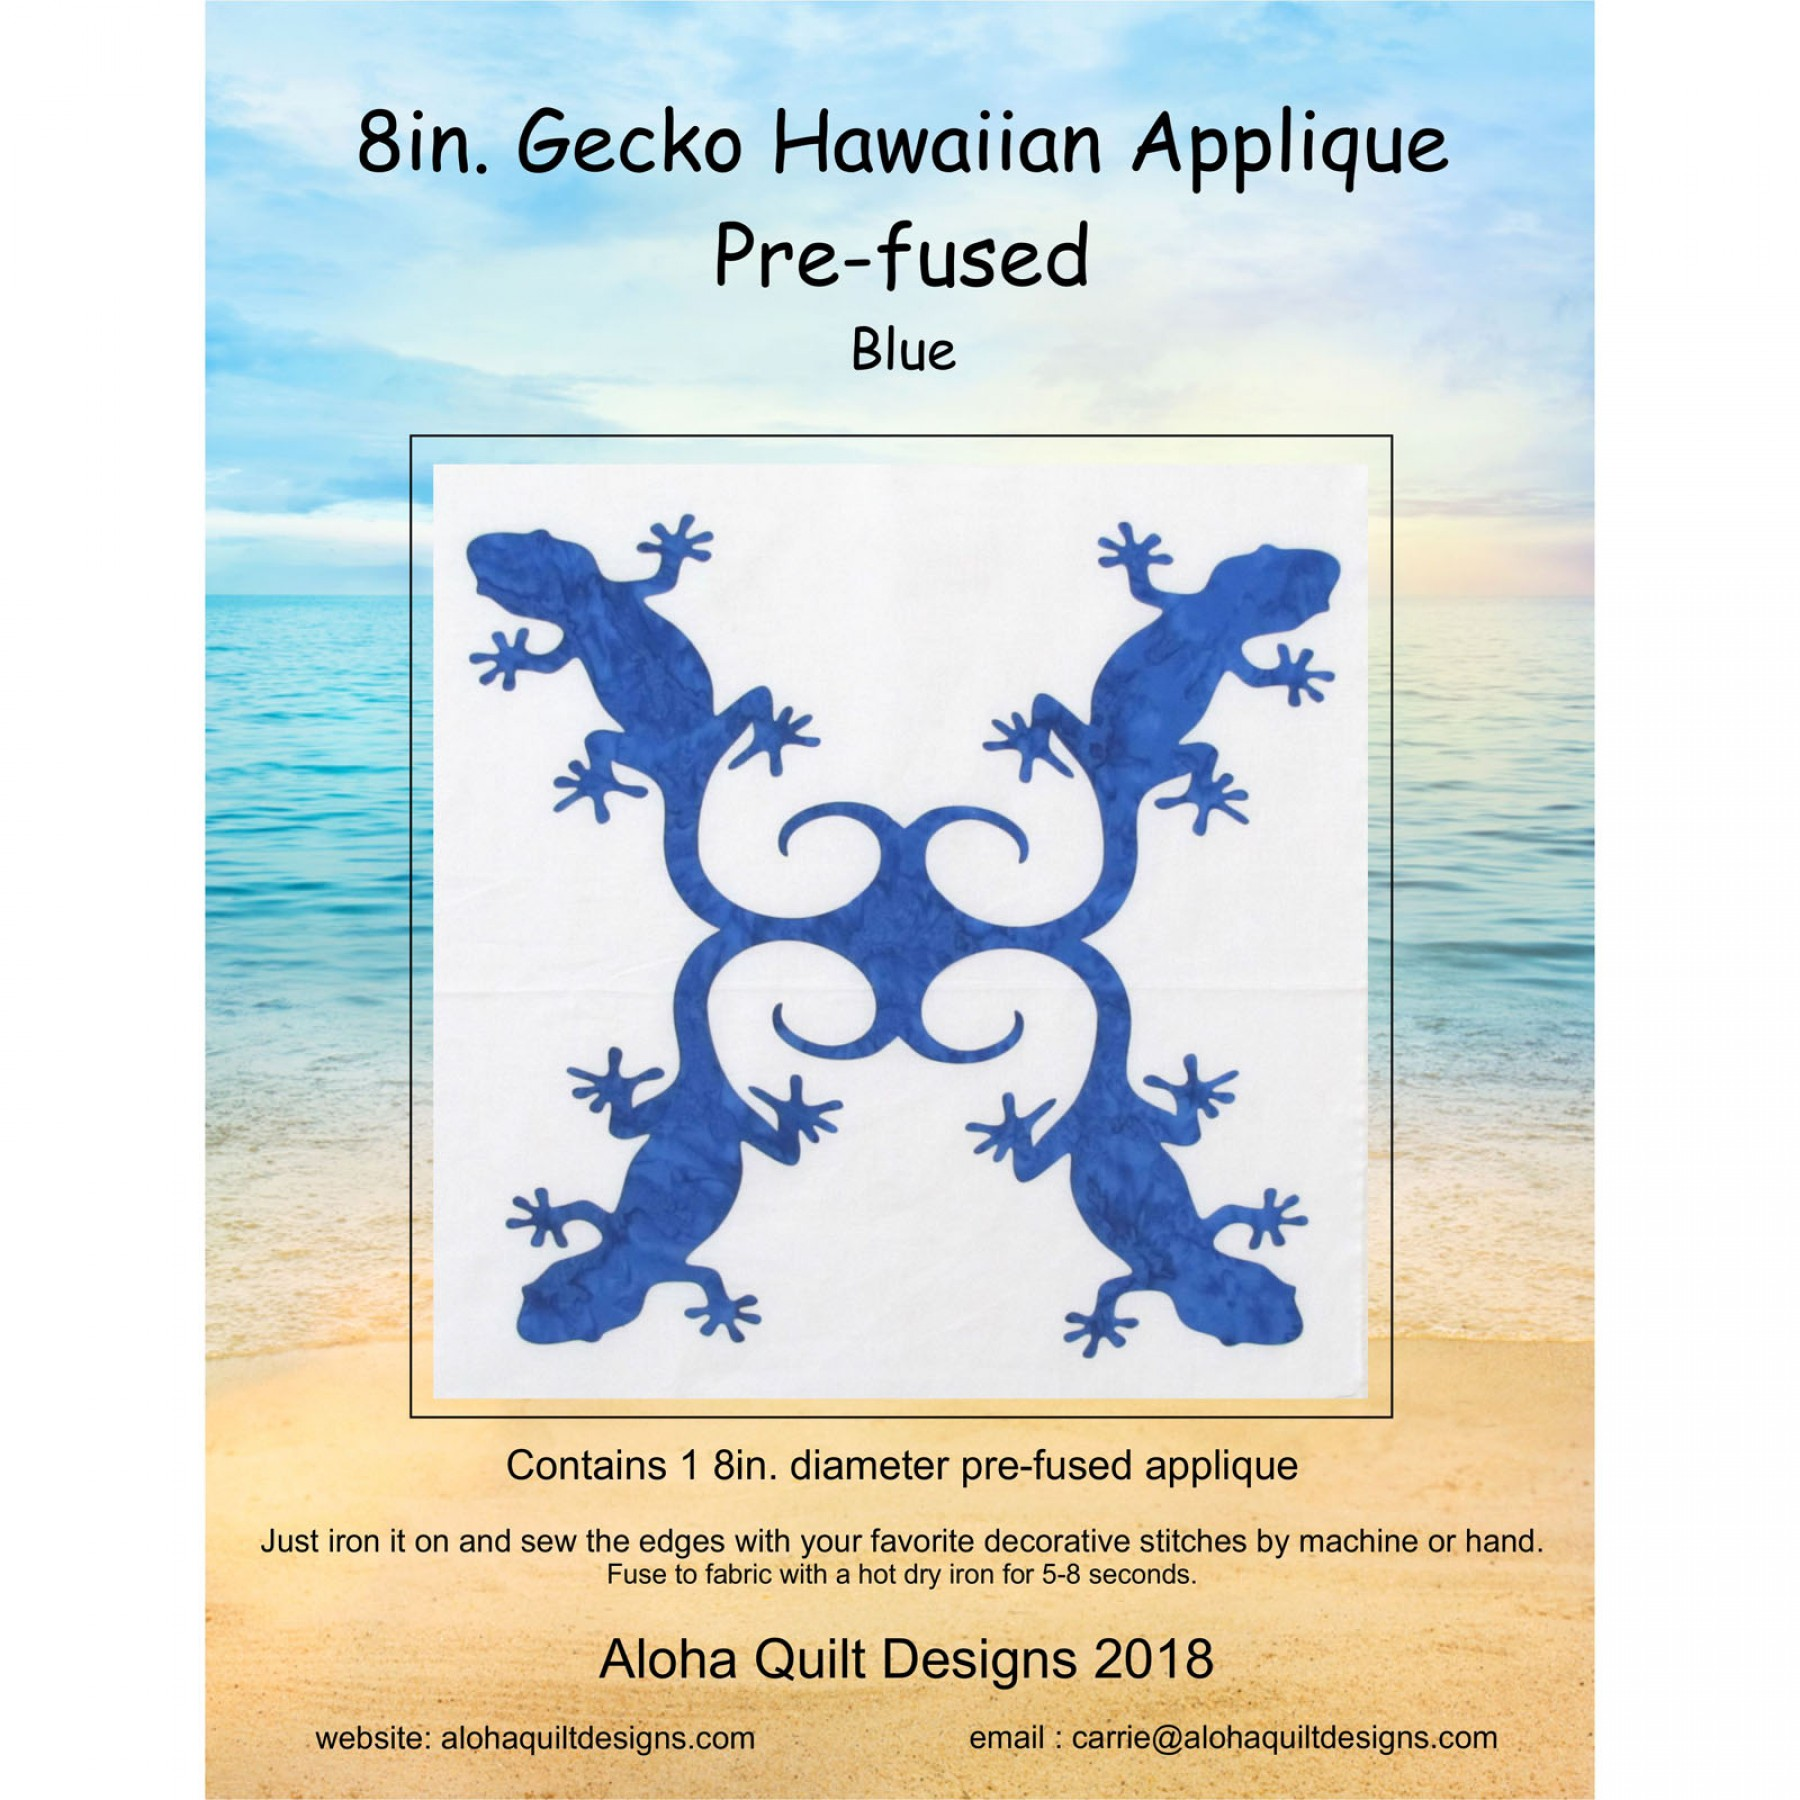 Pre-Fused Hawaiian Appliqué | EE Schenck Co